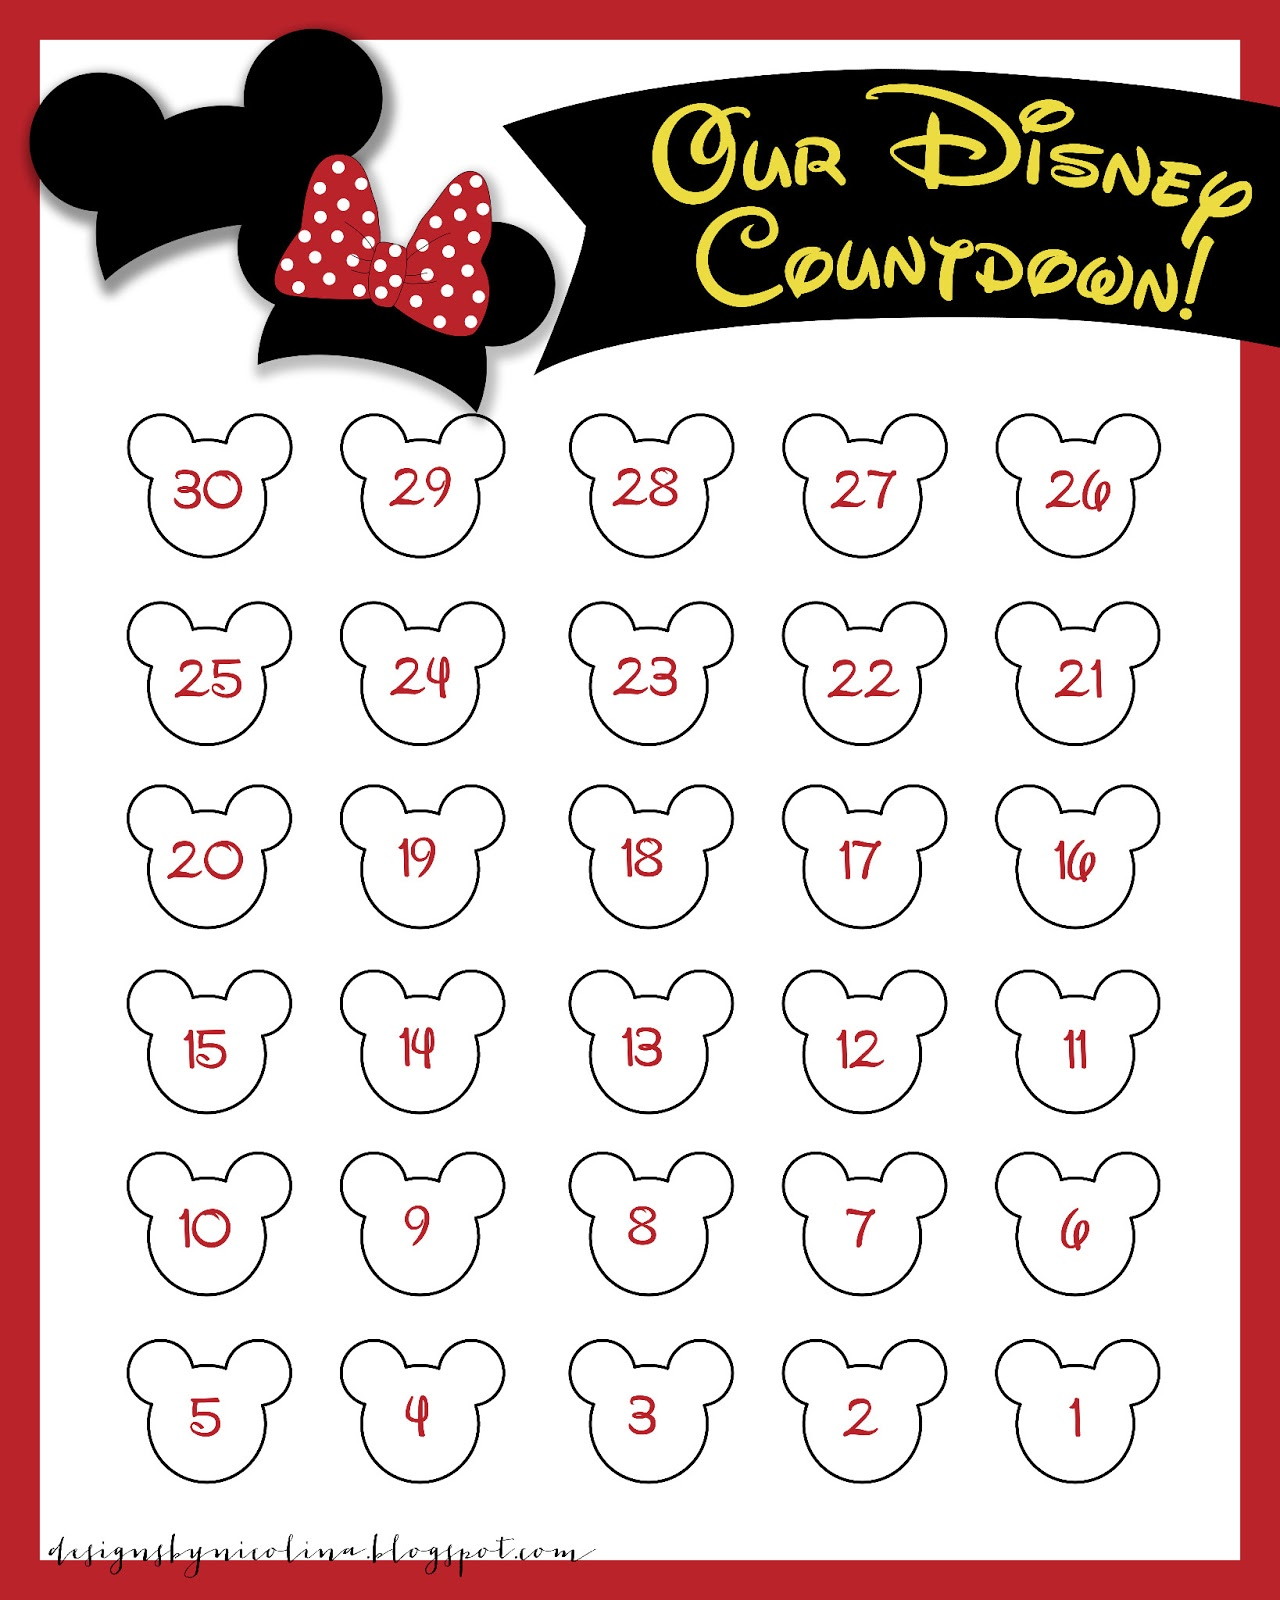 6 Images of Printable Disney Countdown Calendars 2014